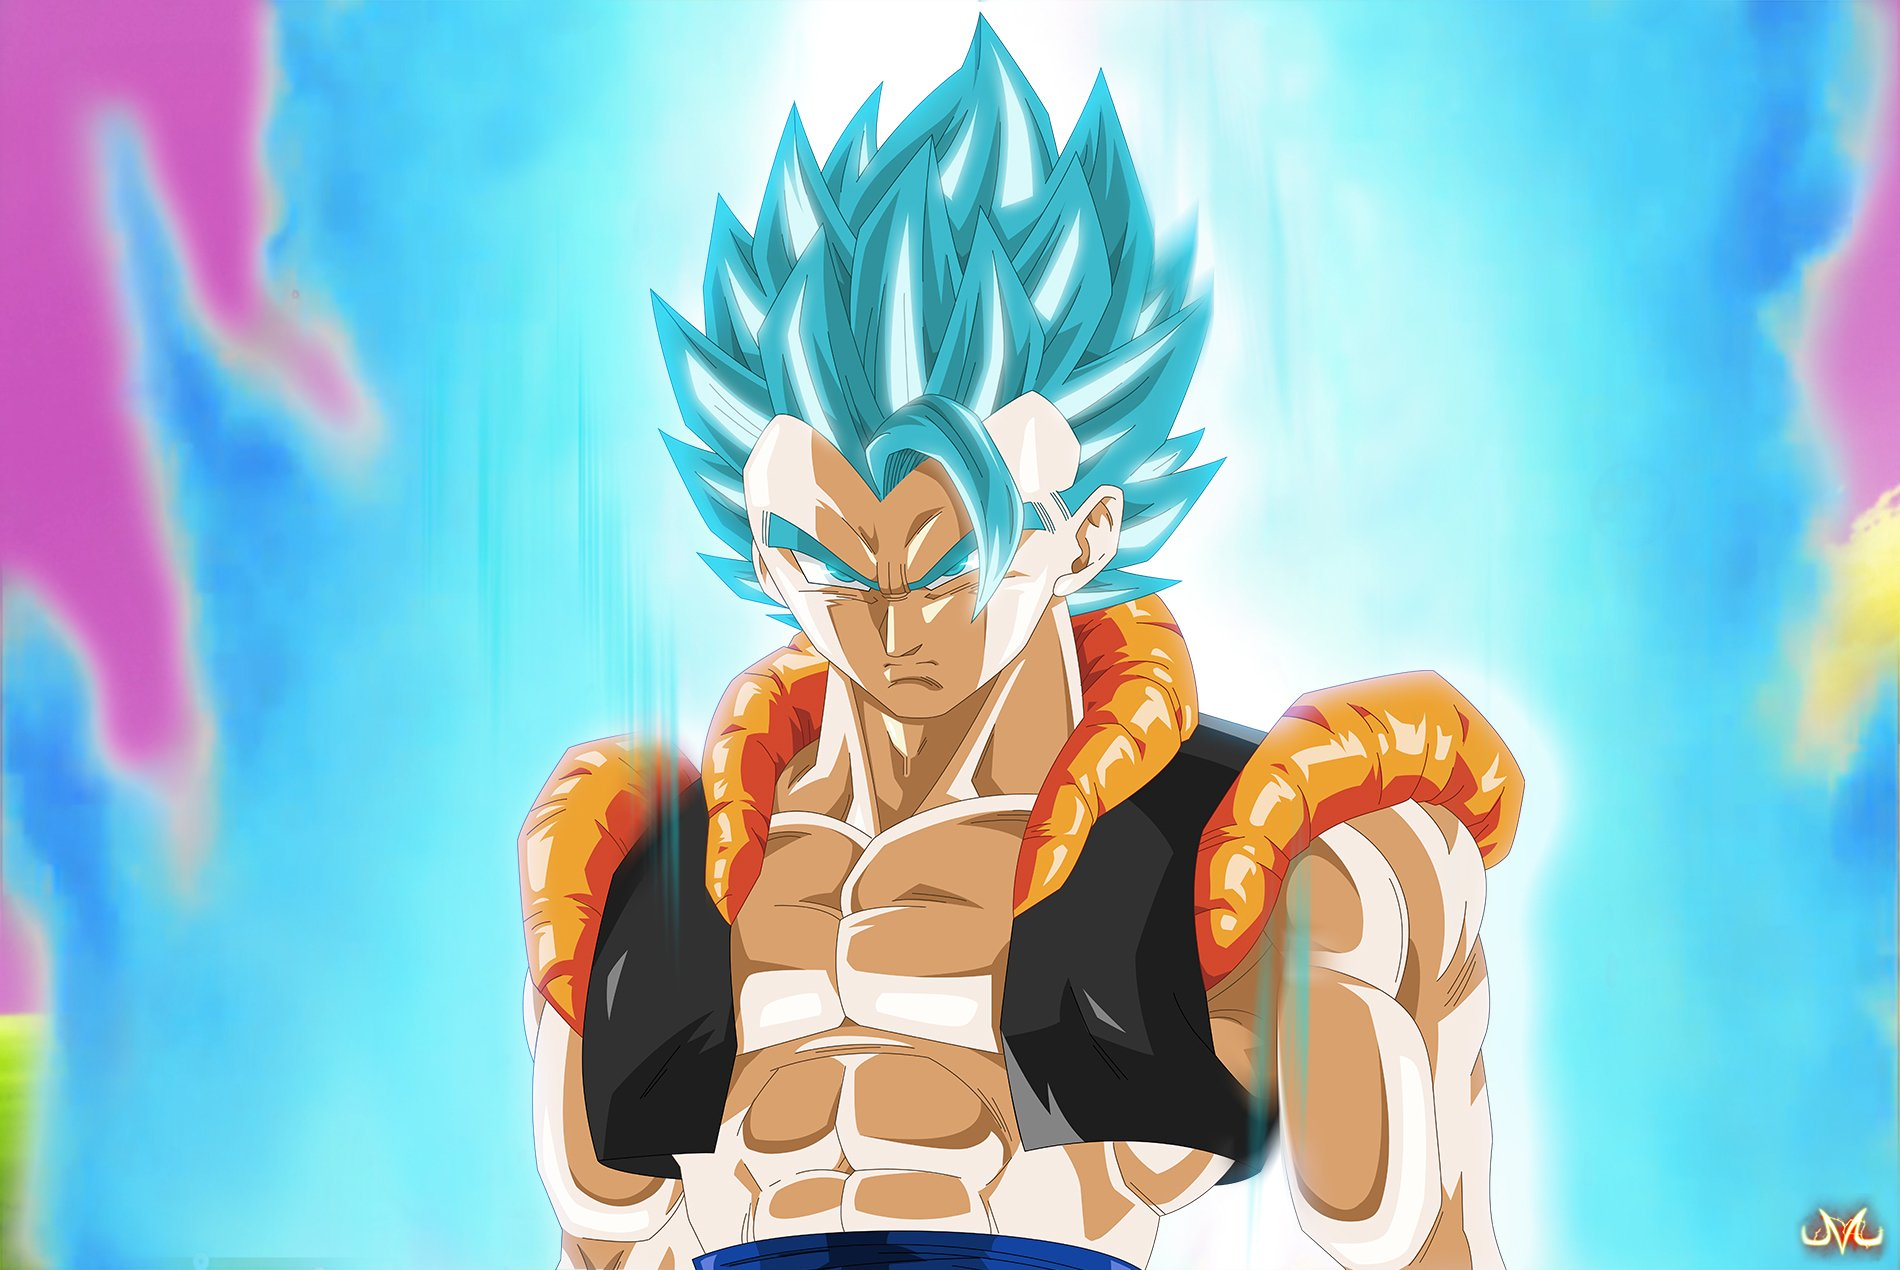 Anime - Dragon Ball Super  Gogeta (Dragon Ball) Wallpaper